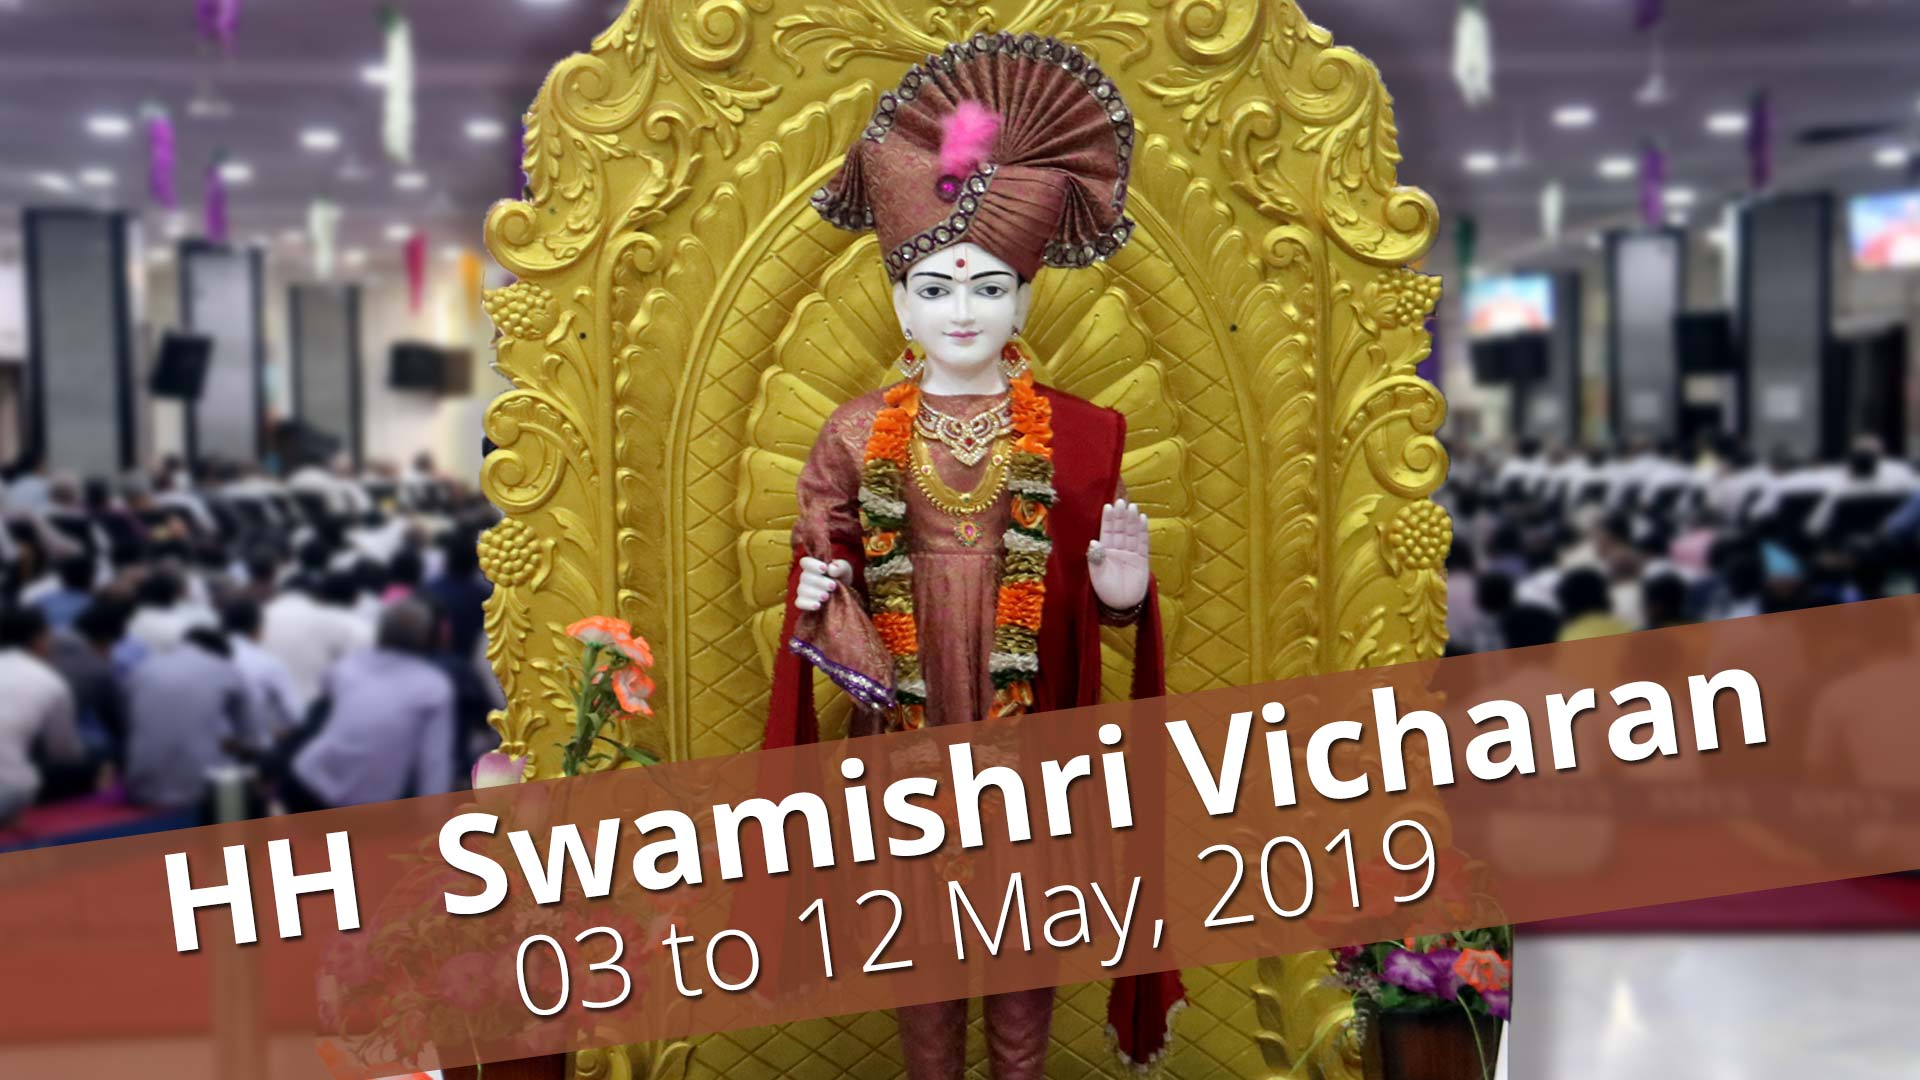 HH Swamishri Vicharan | 03 to 12 May, 2019